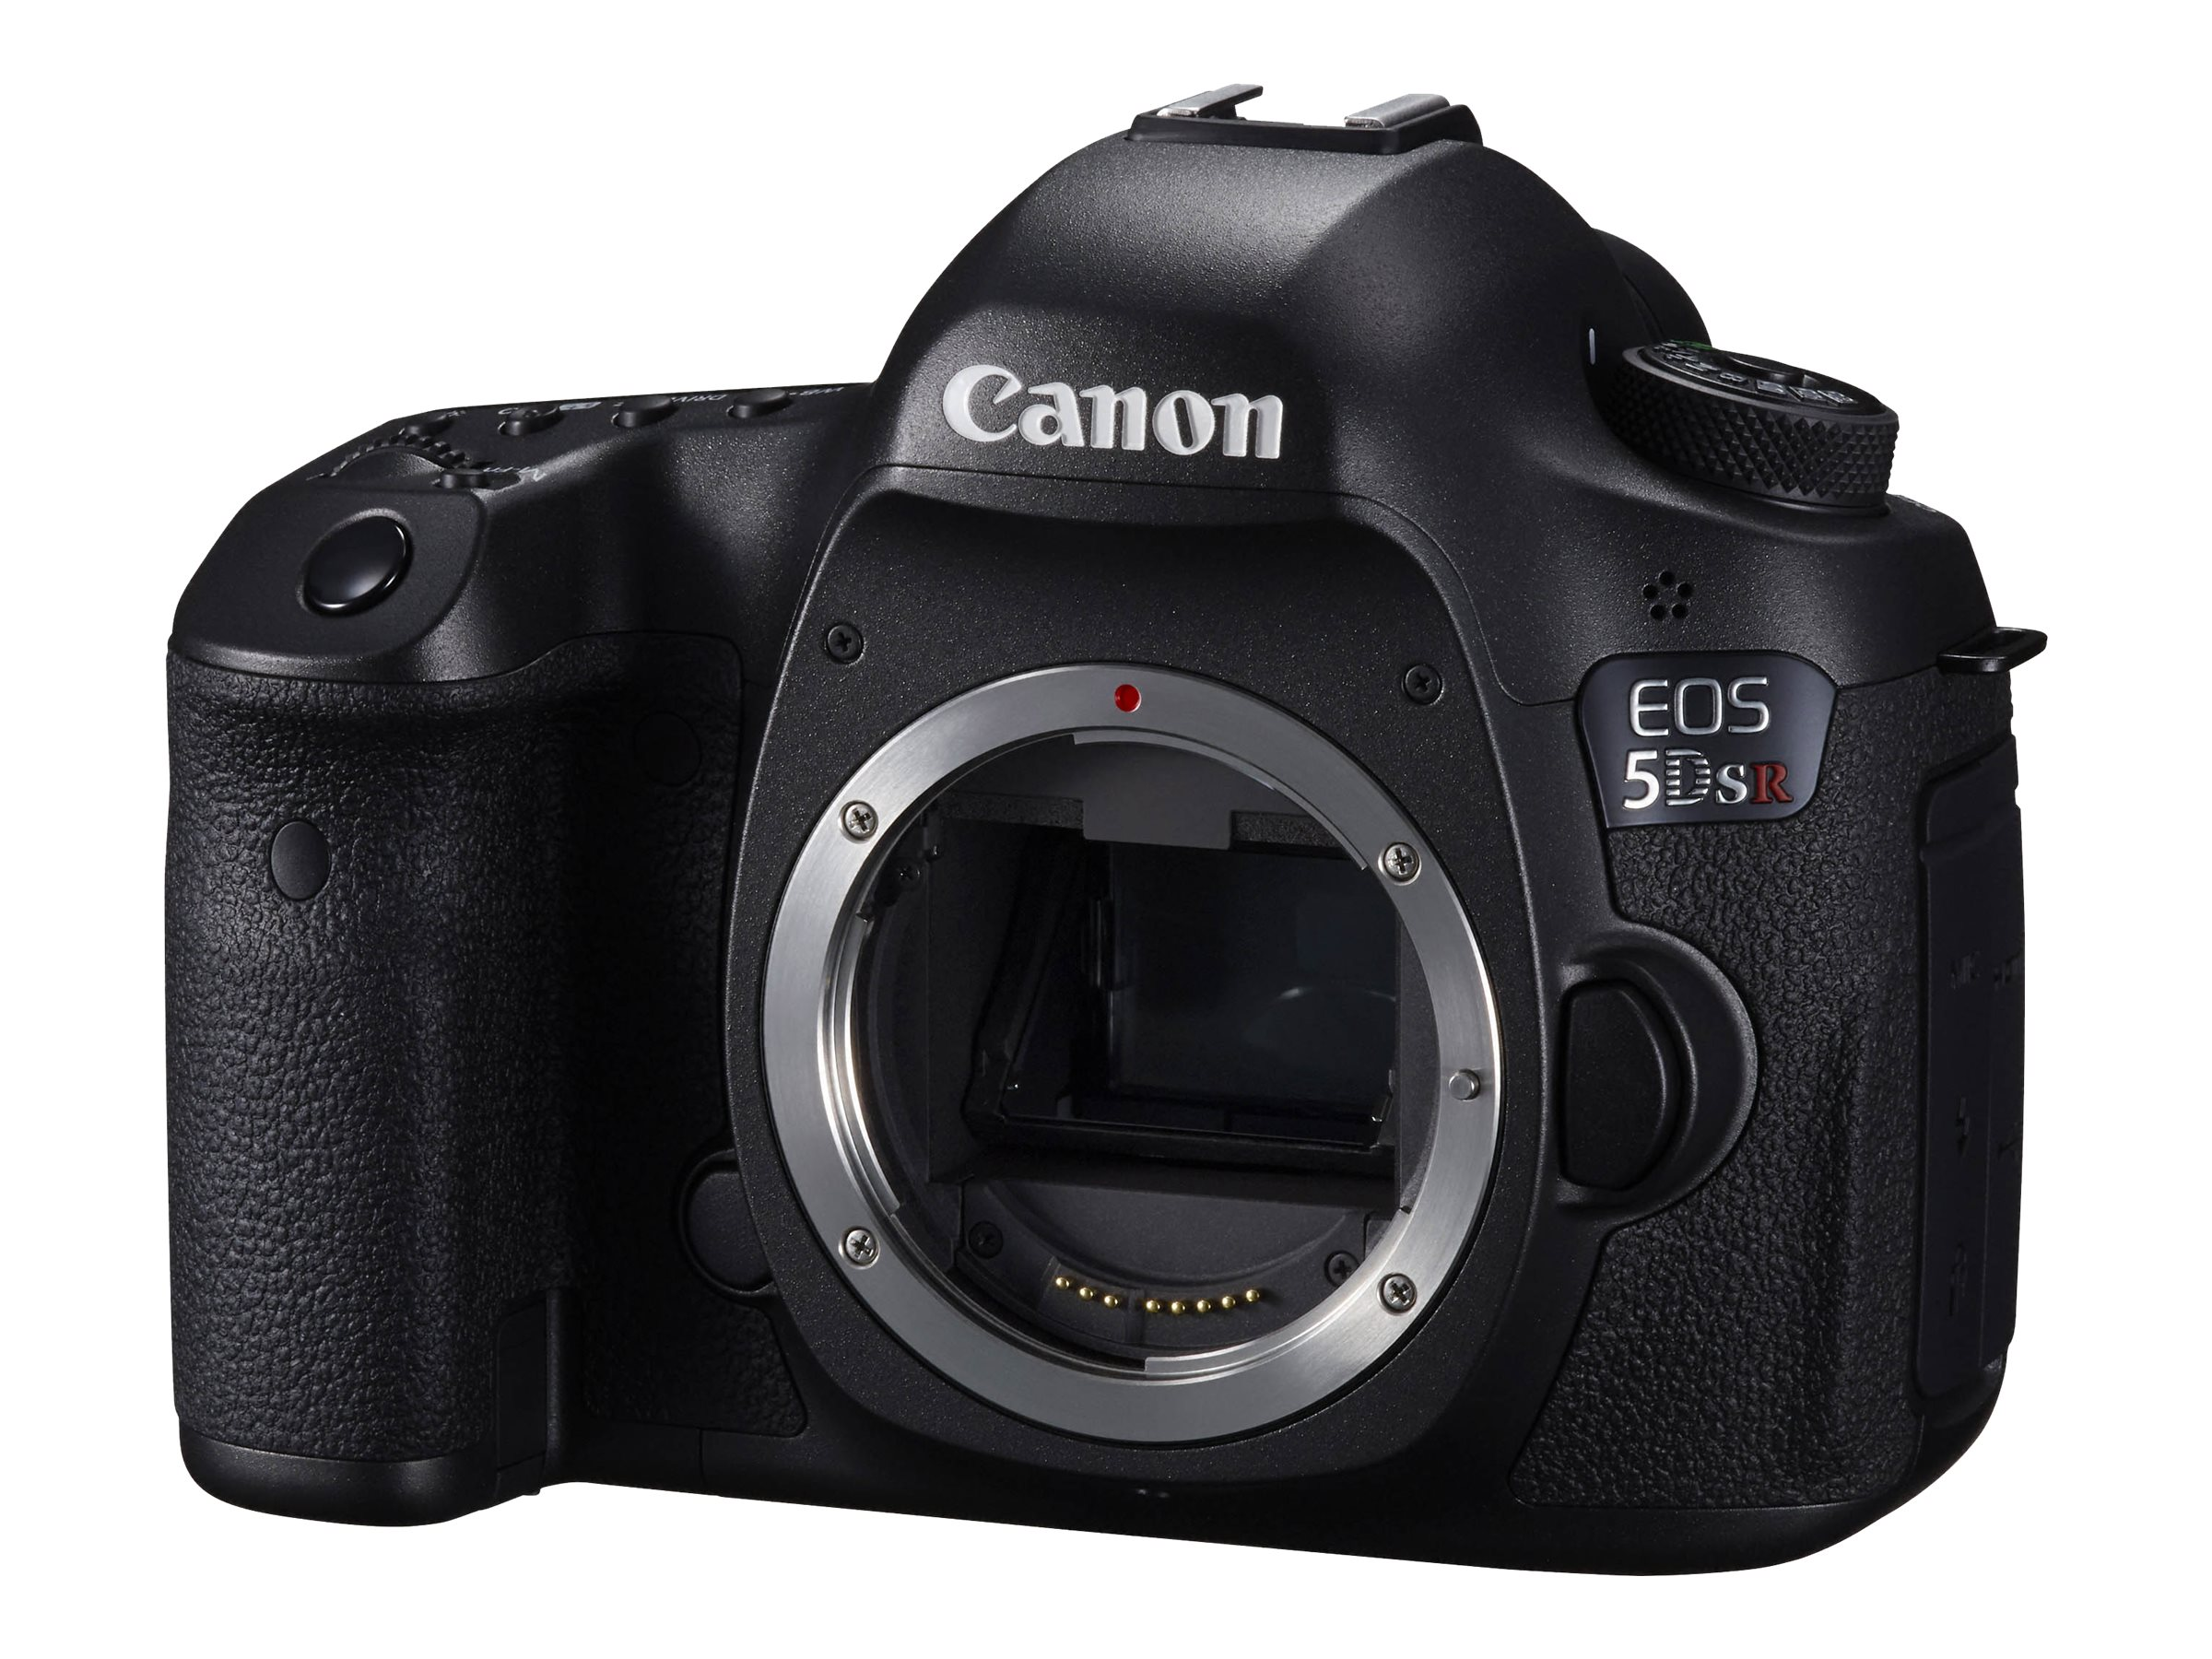 Canon EOS 5DS R Camera (Body Only), Black